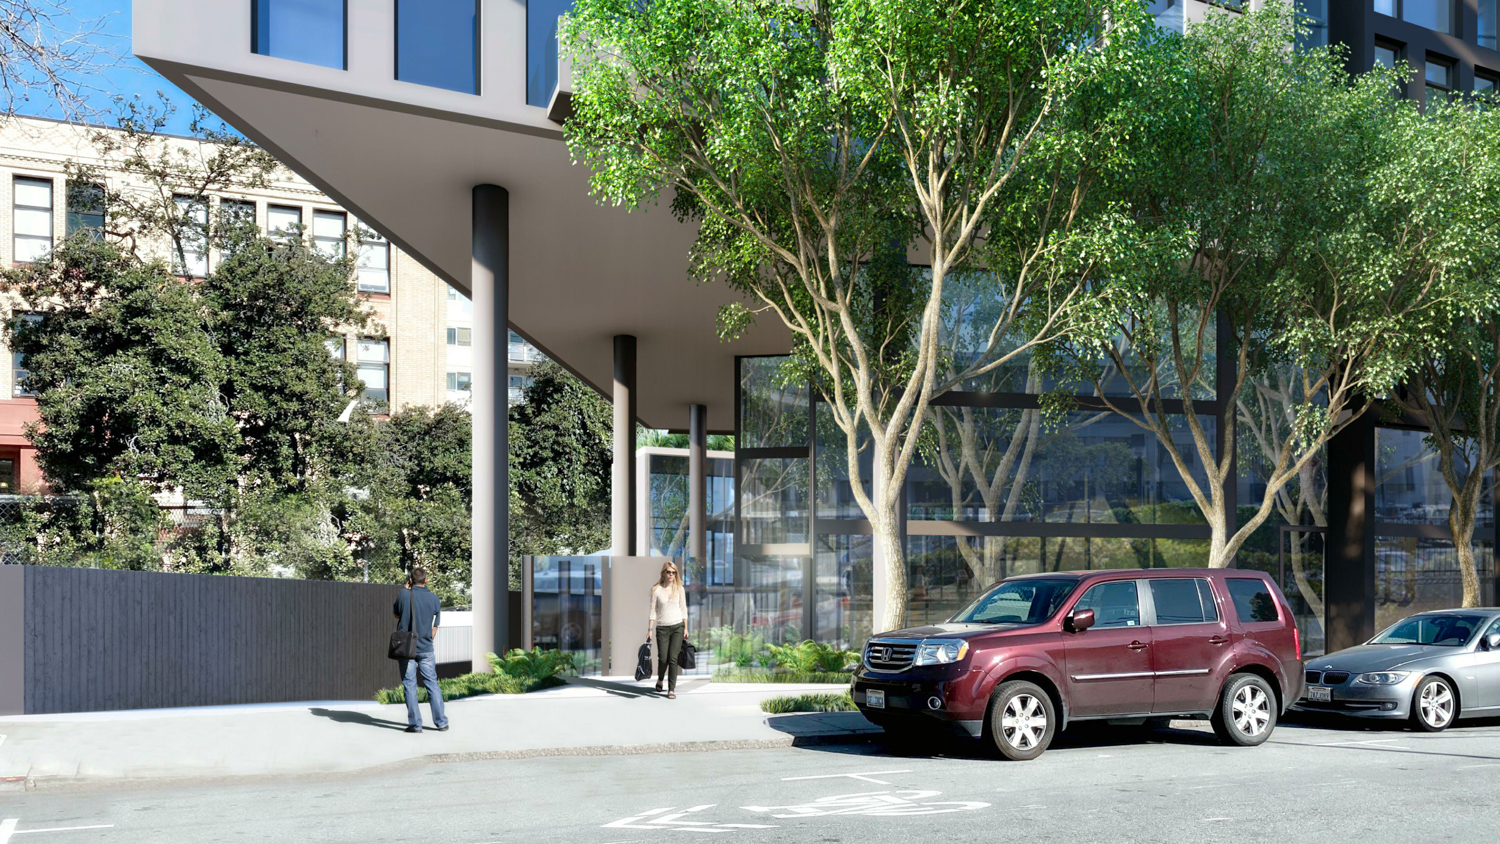 600 McAllister Street residential entry, rendering by David Baker Architects